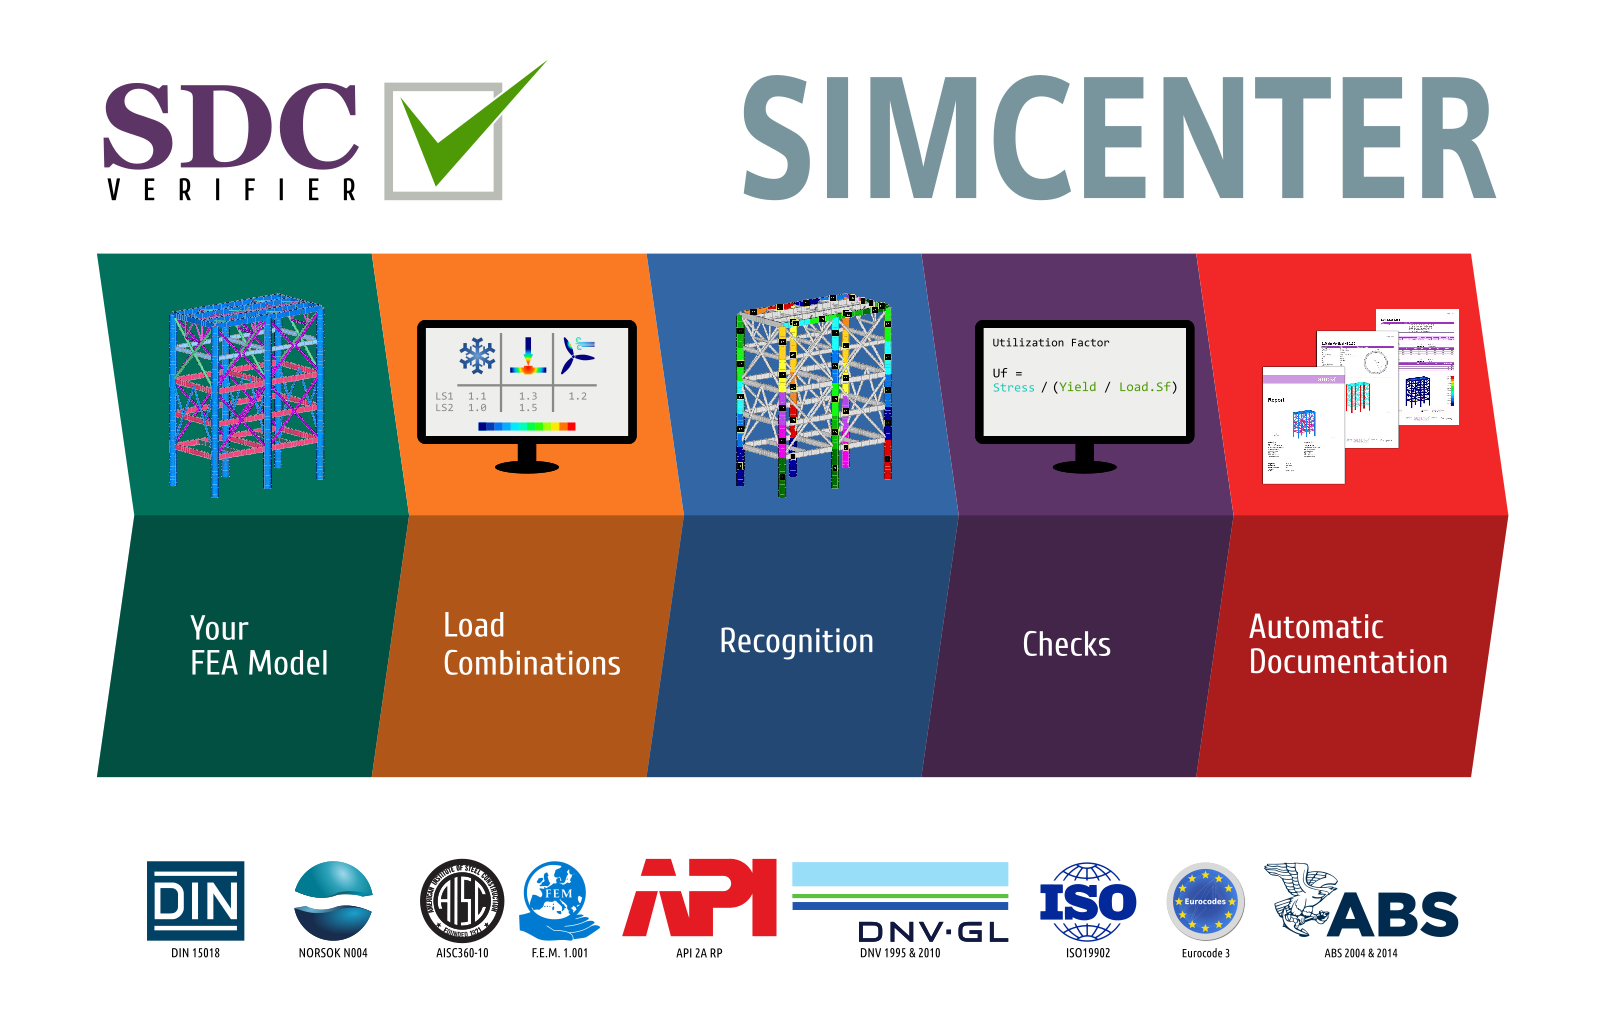 sdc verifier for simcenter